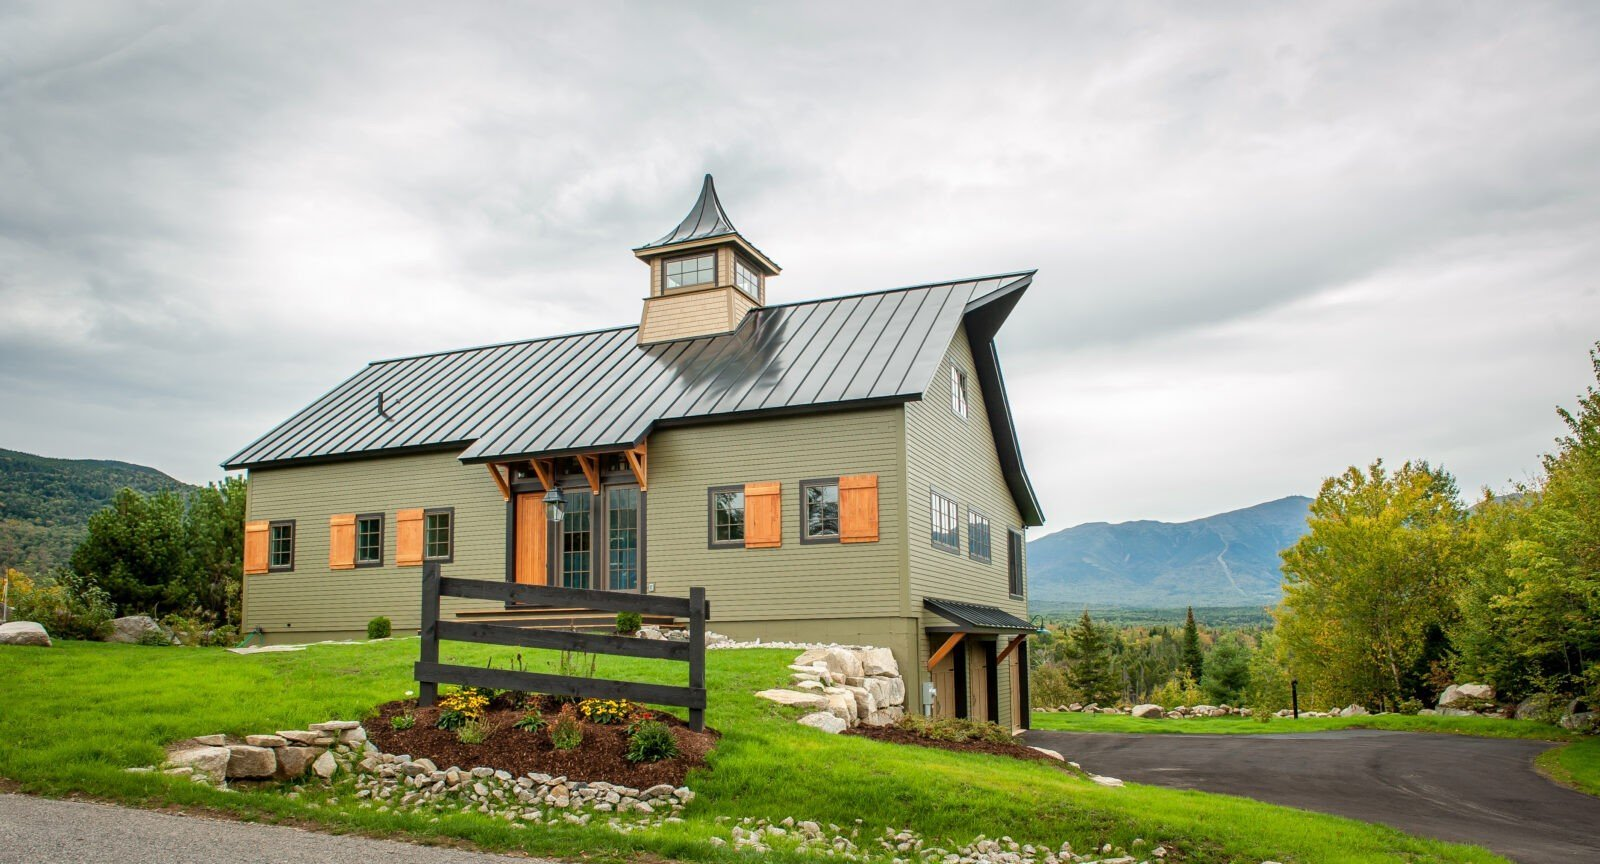 Top notch barn home plans from the ybh design team for Pole barn home gallery